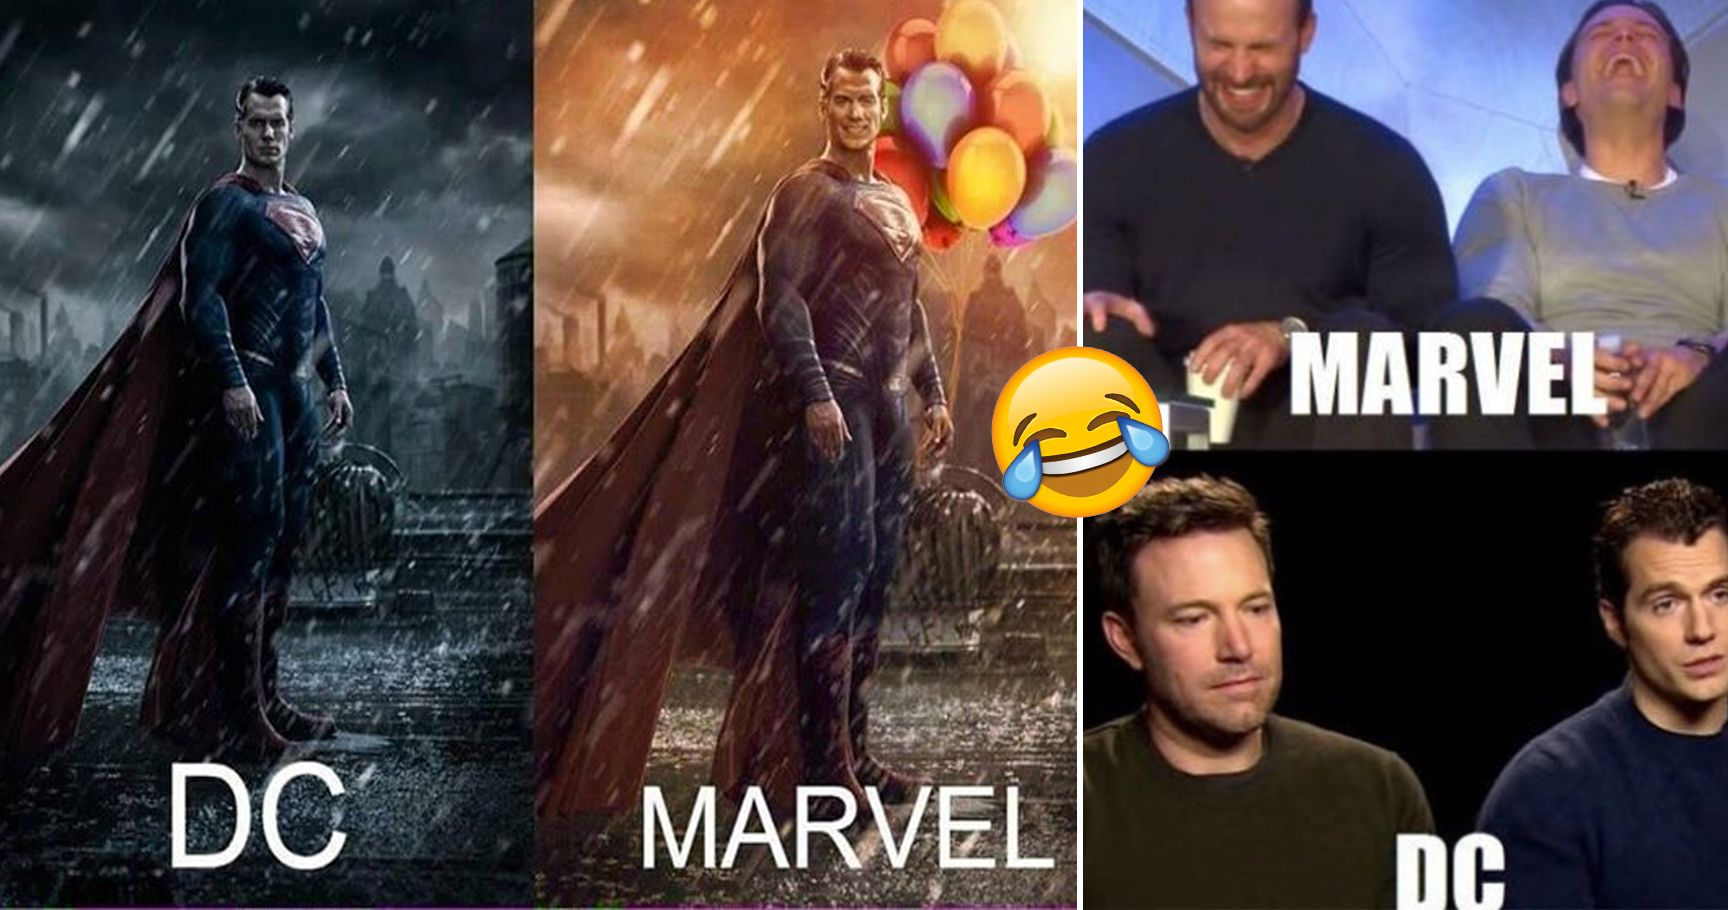 15 MORE Marvel Vs. DC Memes That Will Make You Laugh Way Too Hard